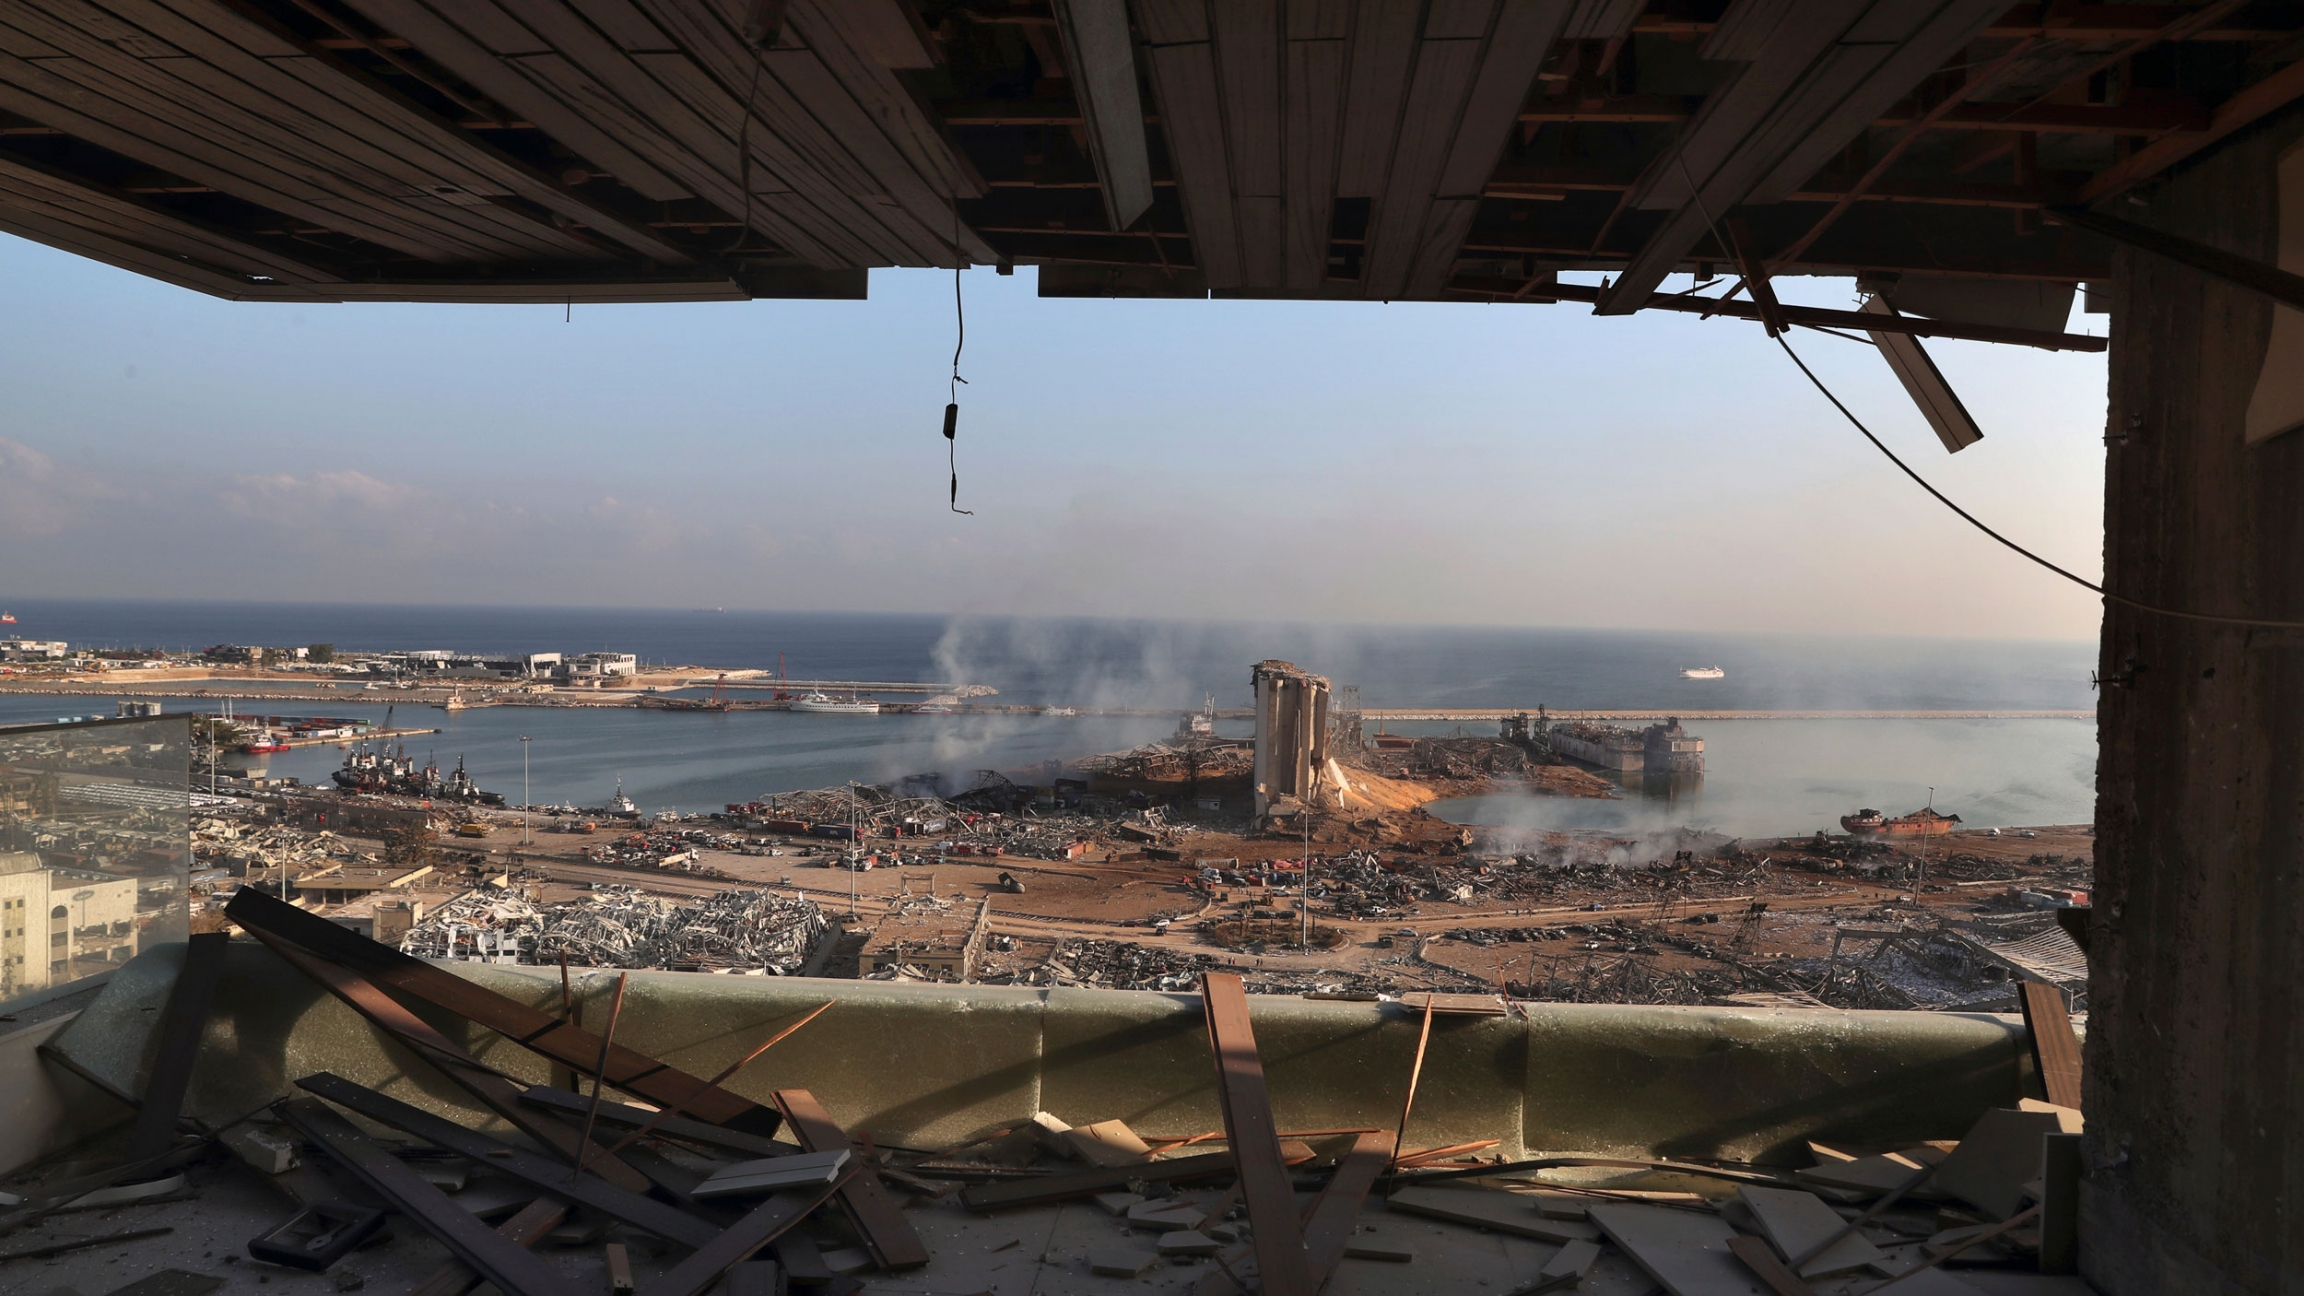 A view of the site of an explosion in the port of Beirut with buildings turned to rubble and shown from inside a facility with it's window blown out.